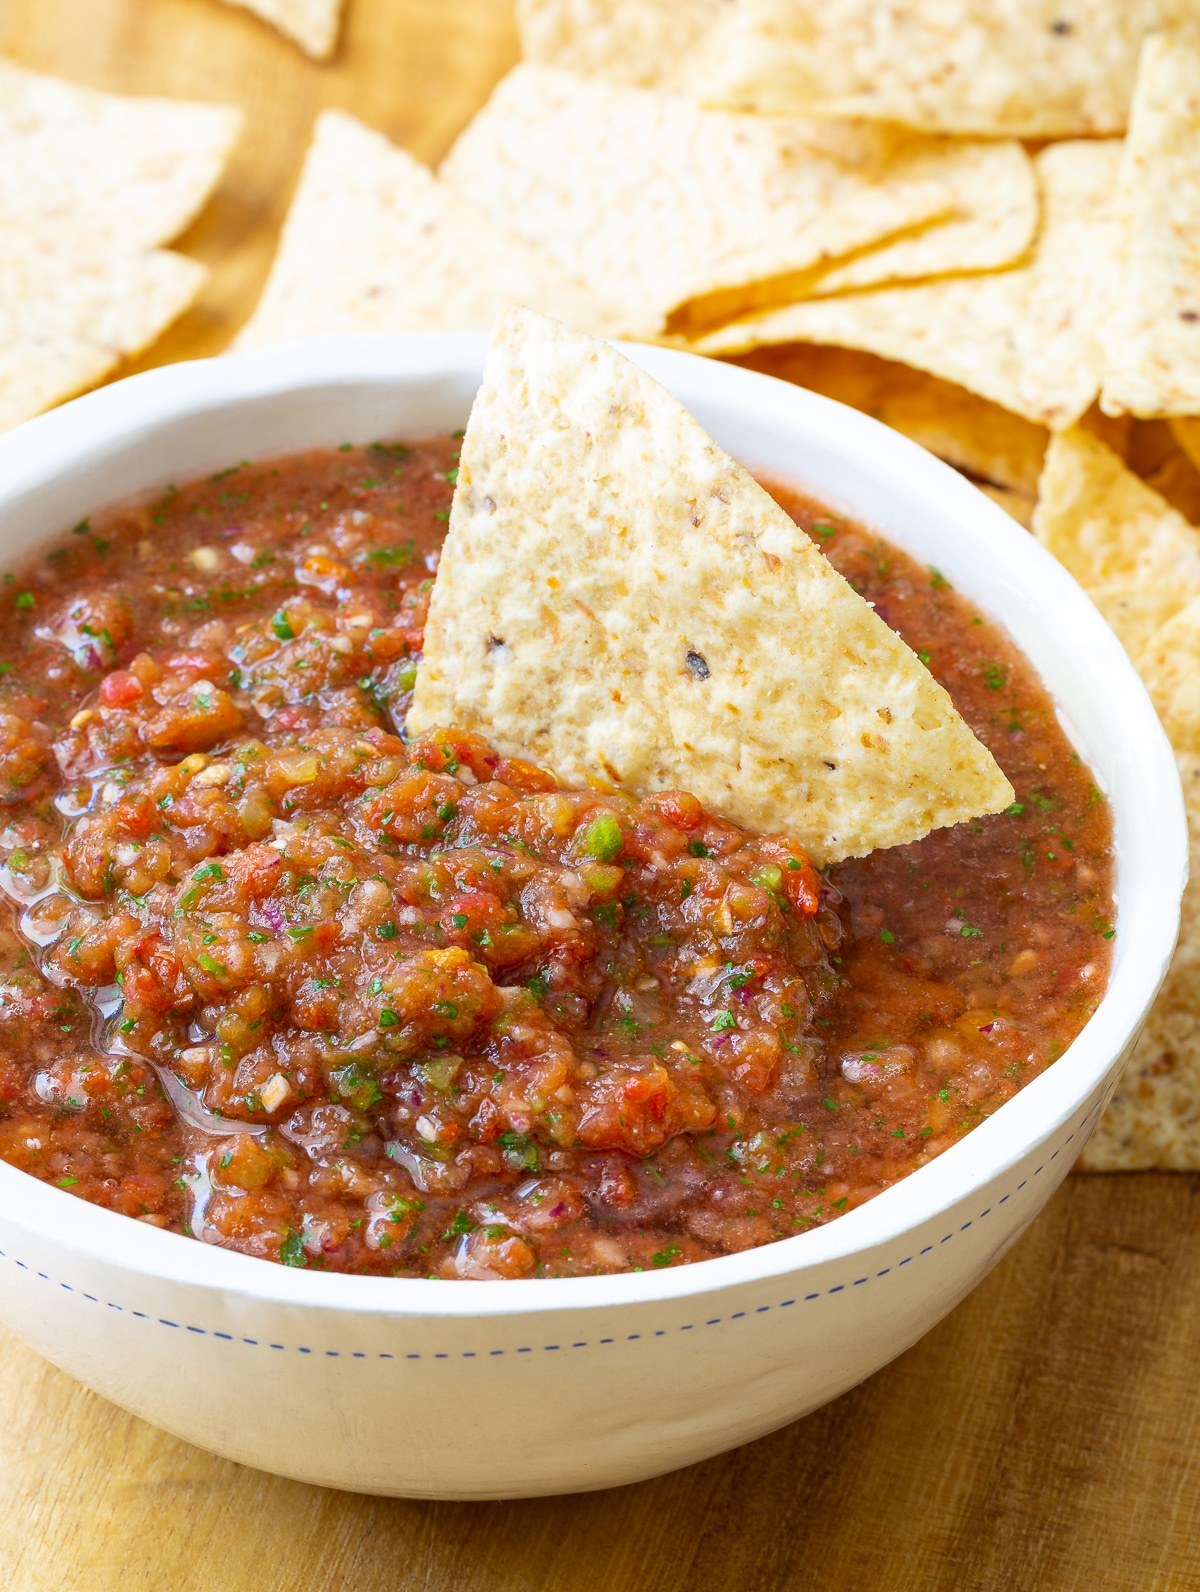 Spicy Salsa Recipe (Quick, Healthy & Delicious!) #ASpicyPerspective #salsa #mexican #cincodemayo #fresh #homemade #best